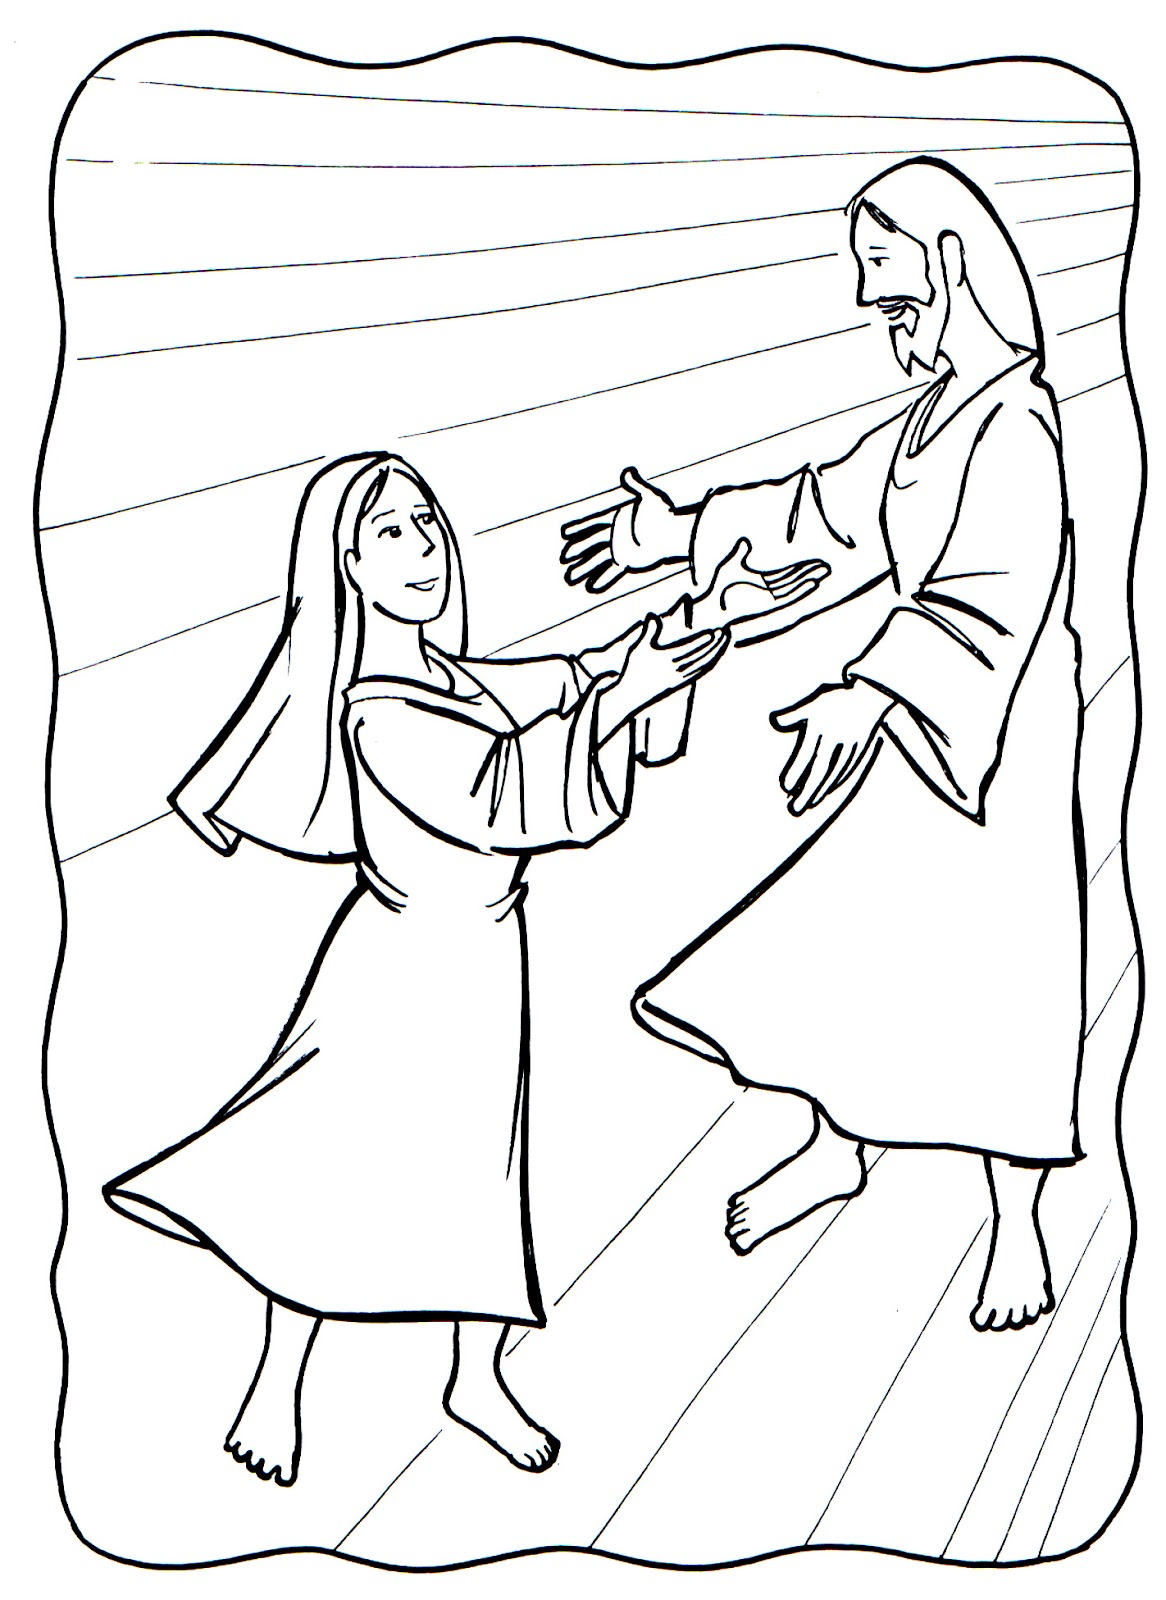 ascension of mary coloring pages - photo#12